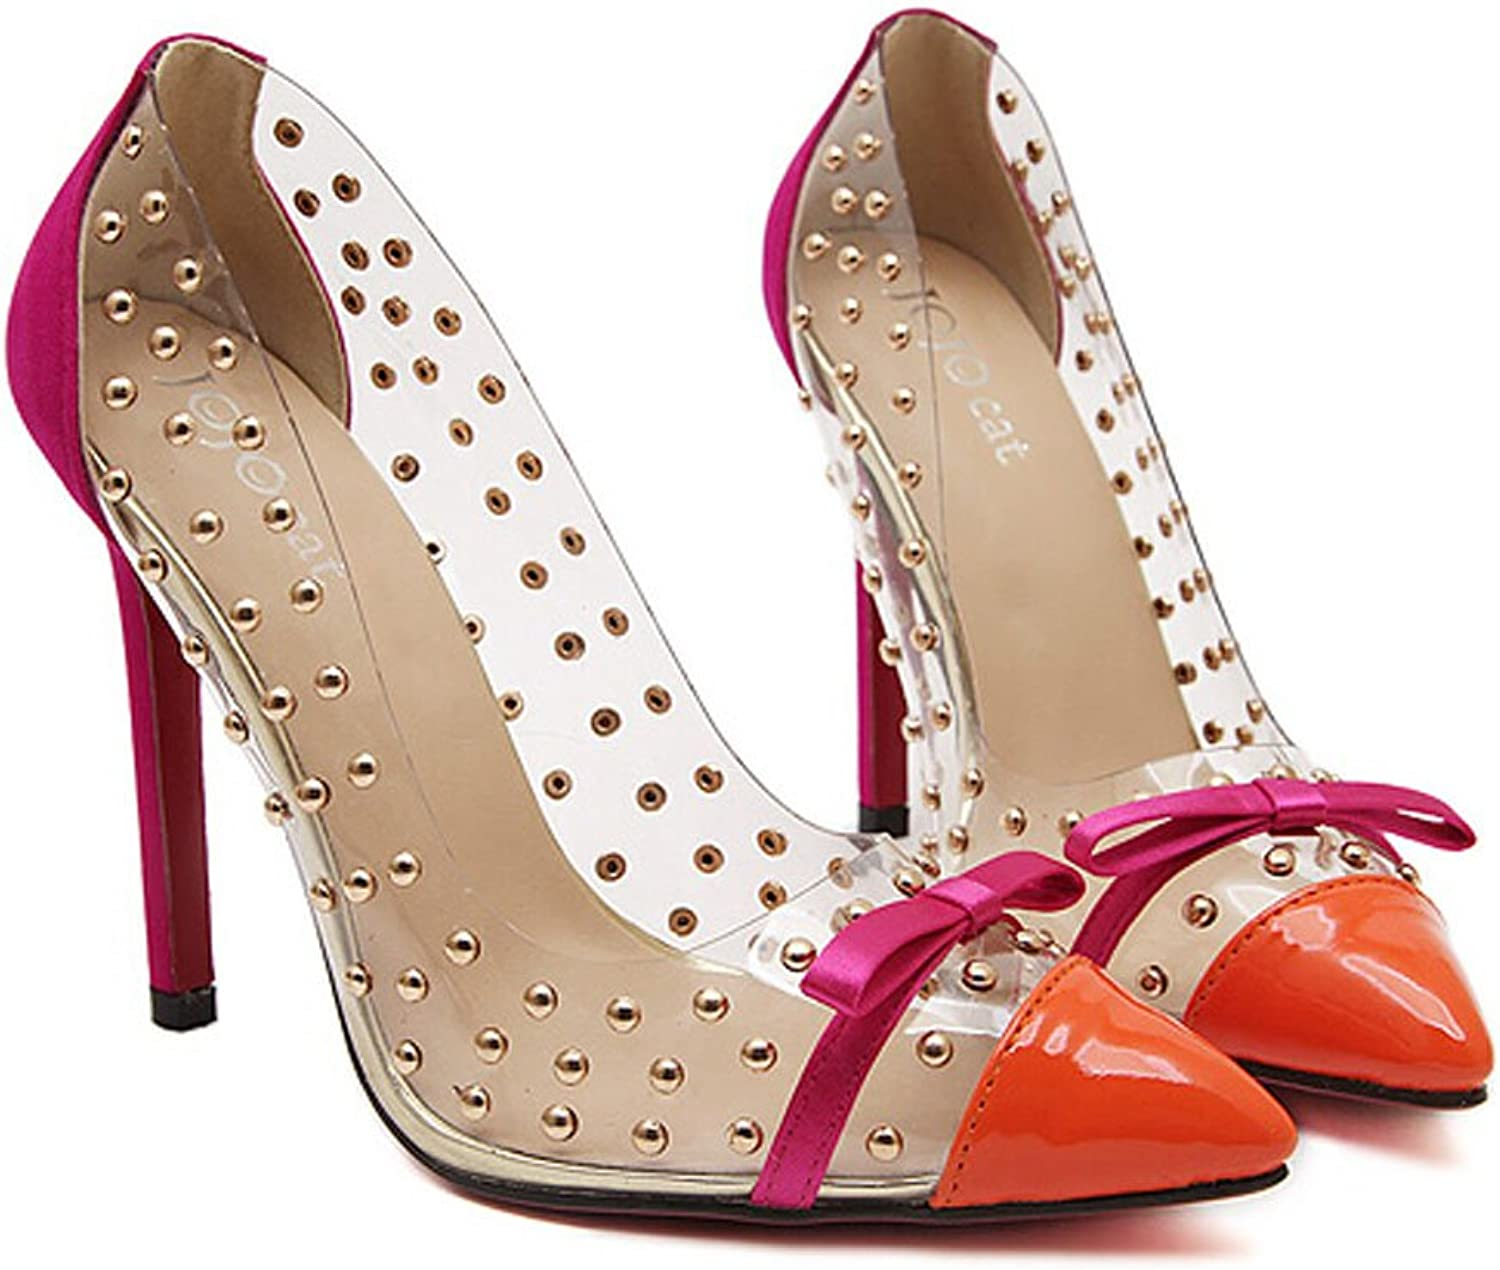 San hojas High Heels with Bow Pointed Toe